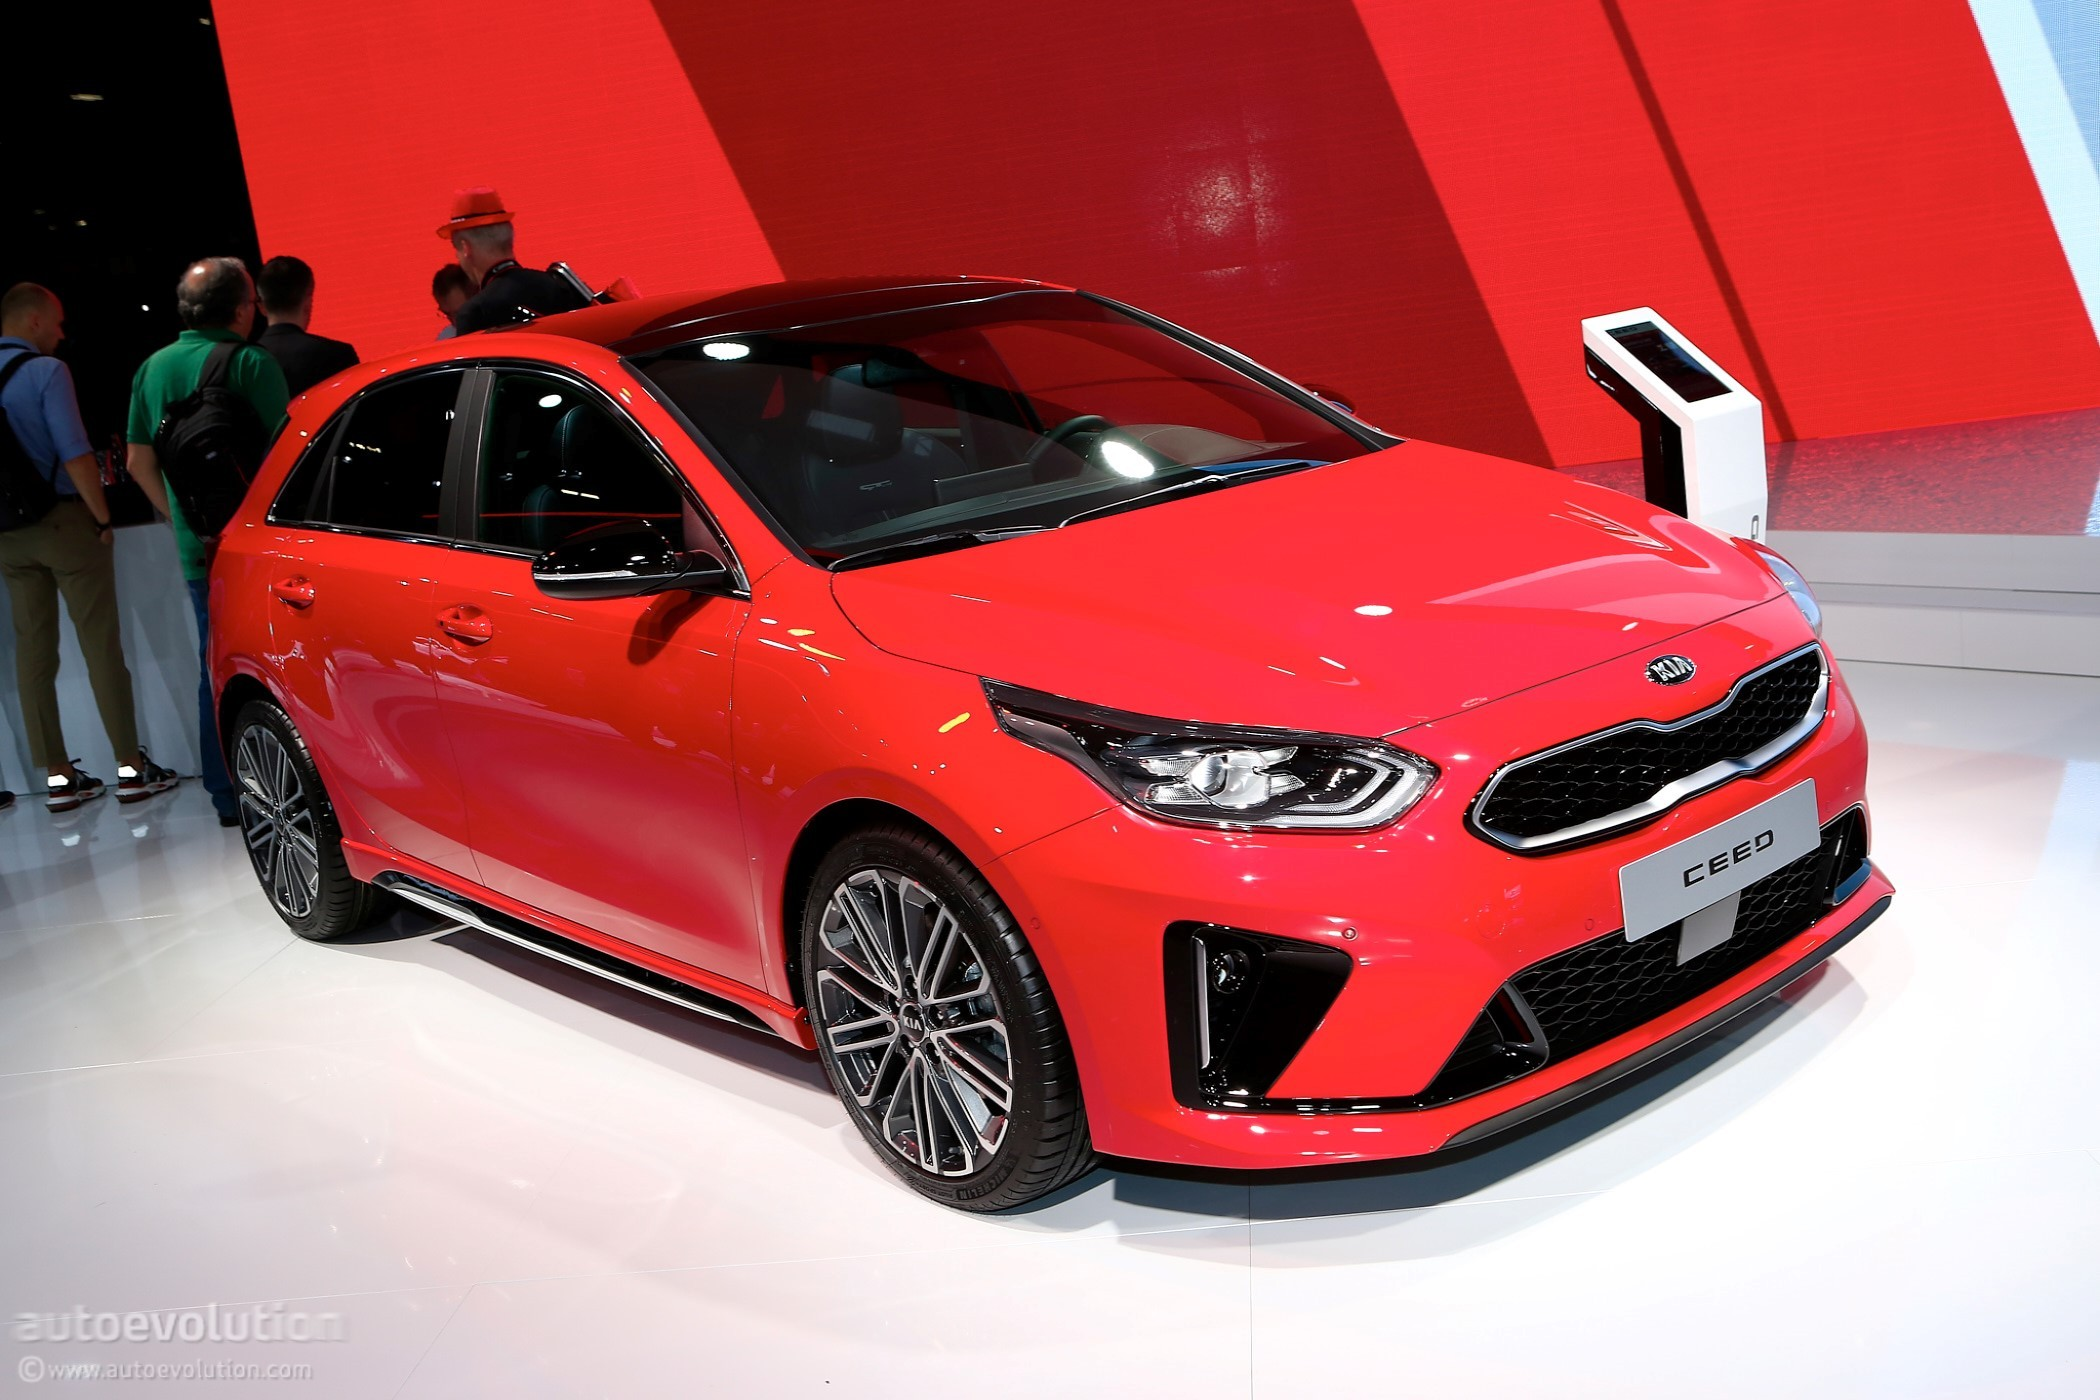 2019 Kia Ceed Gt Line Tries Too Hard To Look Fast HD Wallpapers Download free images and photos [musssic.tk]